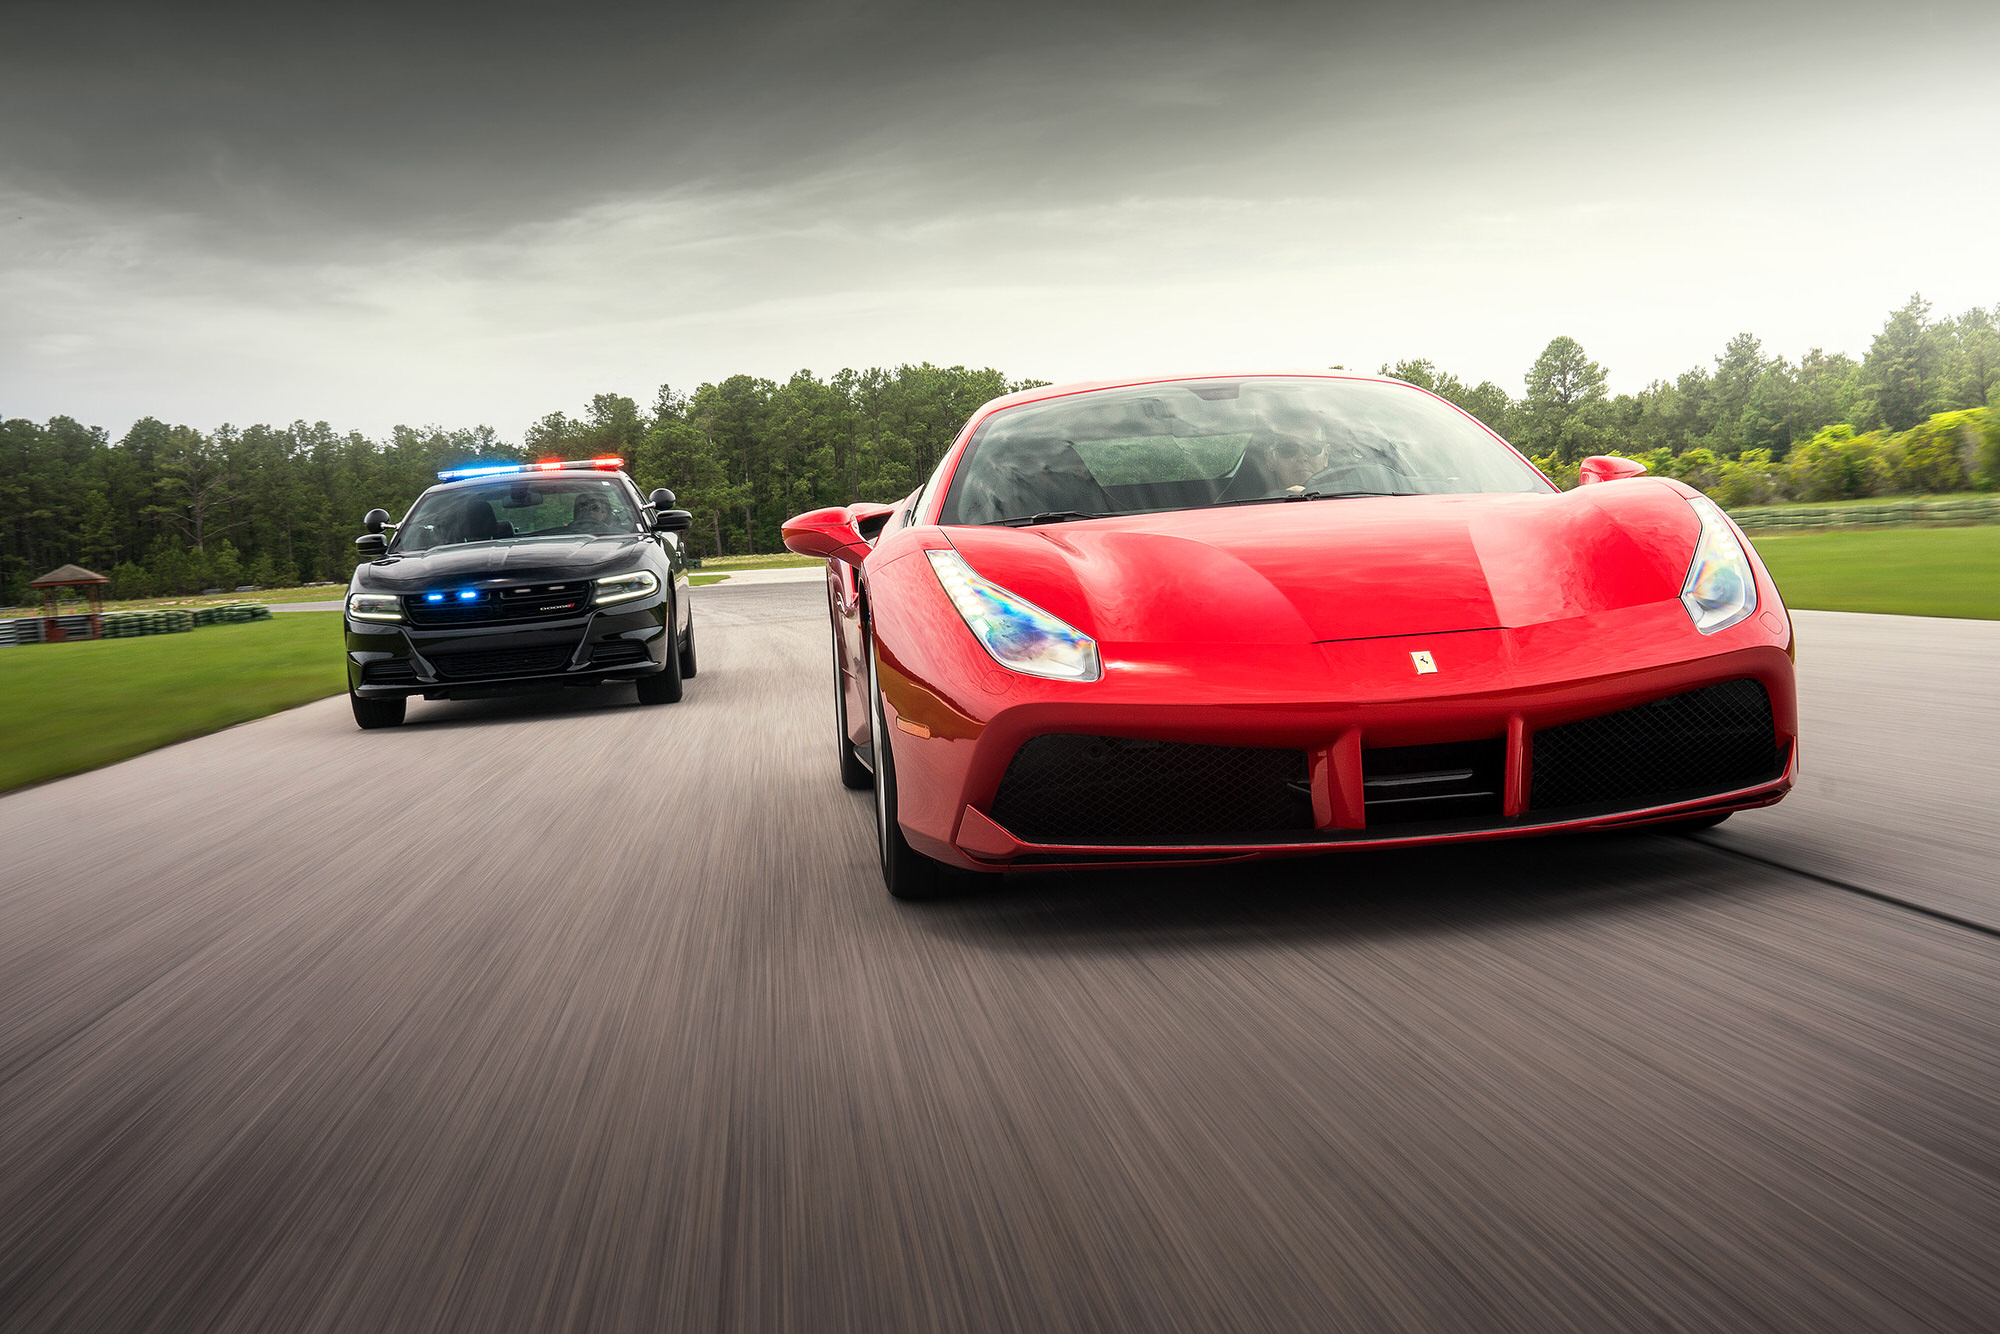 Police Dodge Charger Pursuit chasing a Ferrari 488GTB